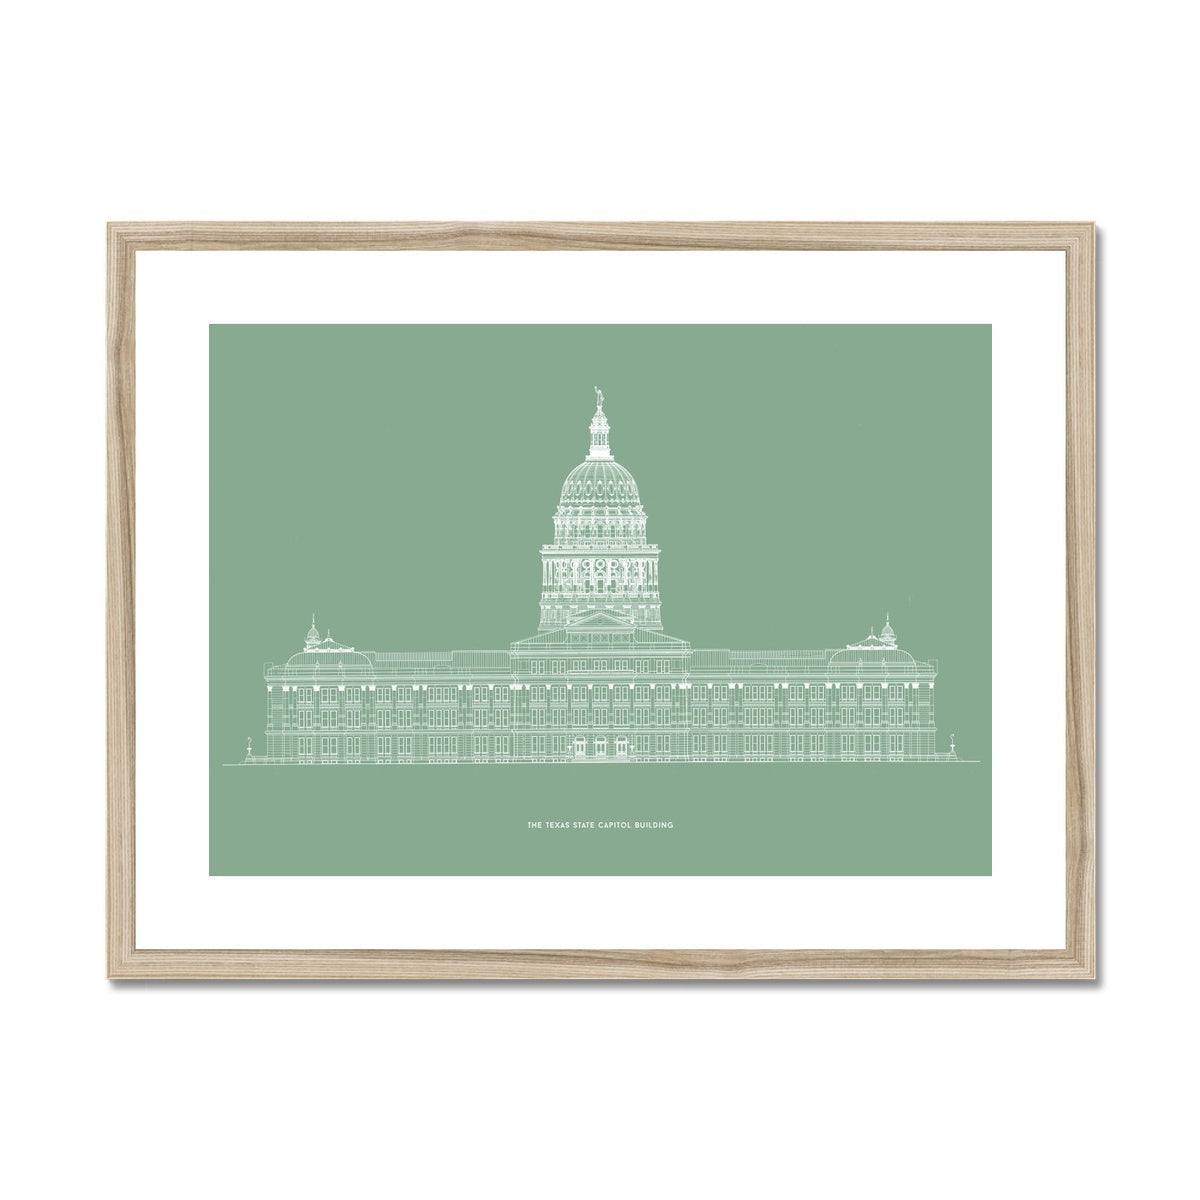 The Texas State Capitol Building - North Elevation - Green -  Framed & Mounted Print